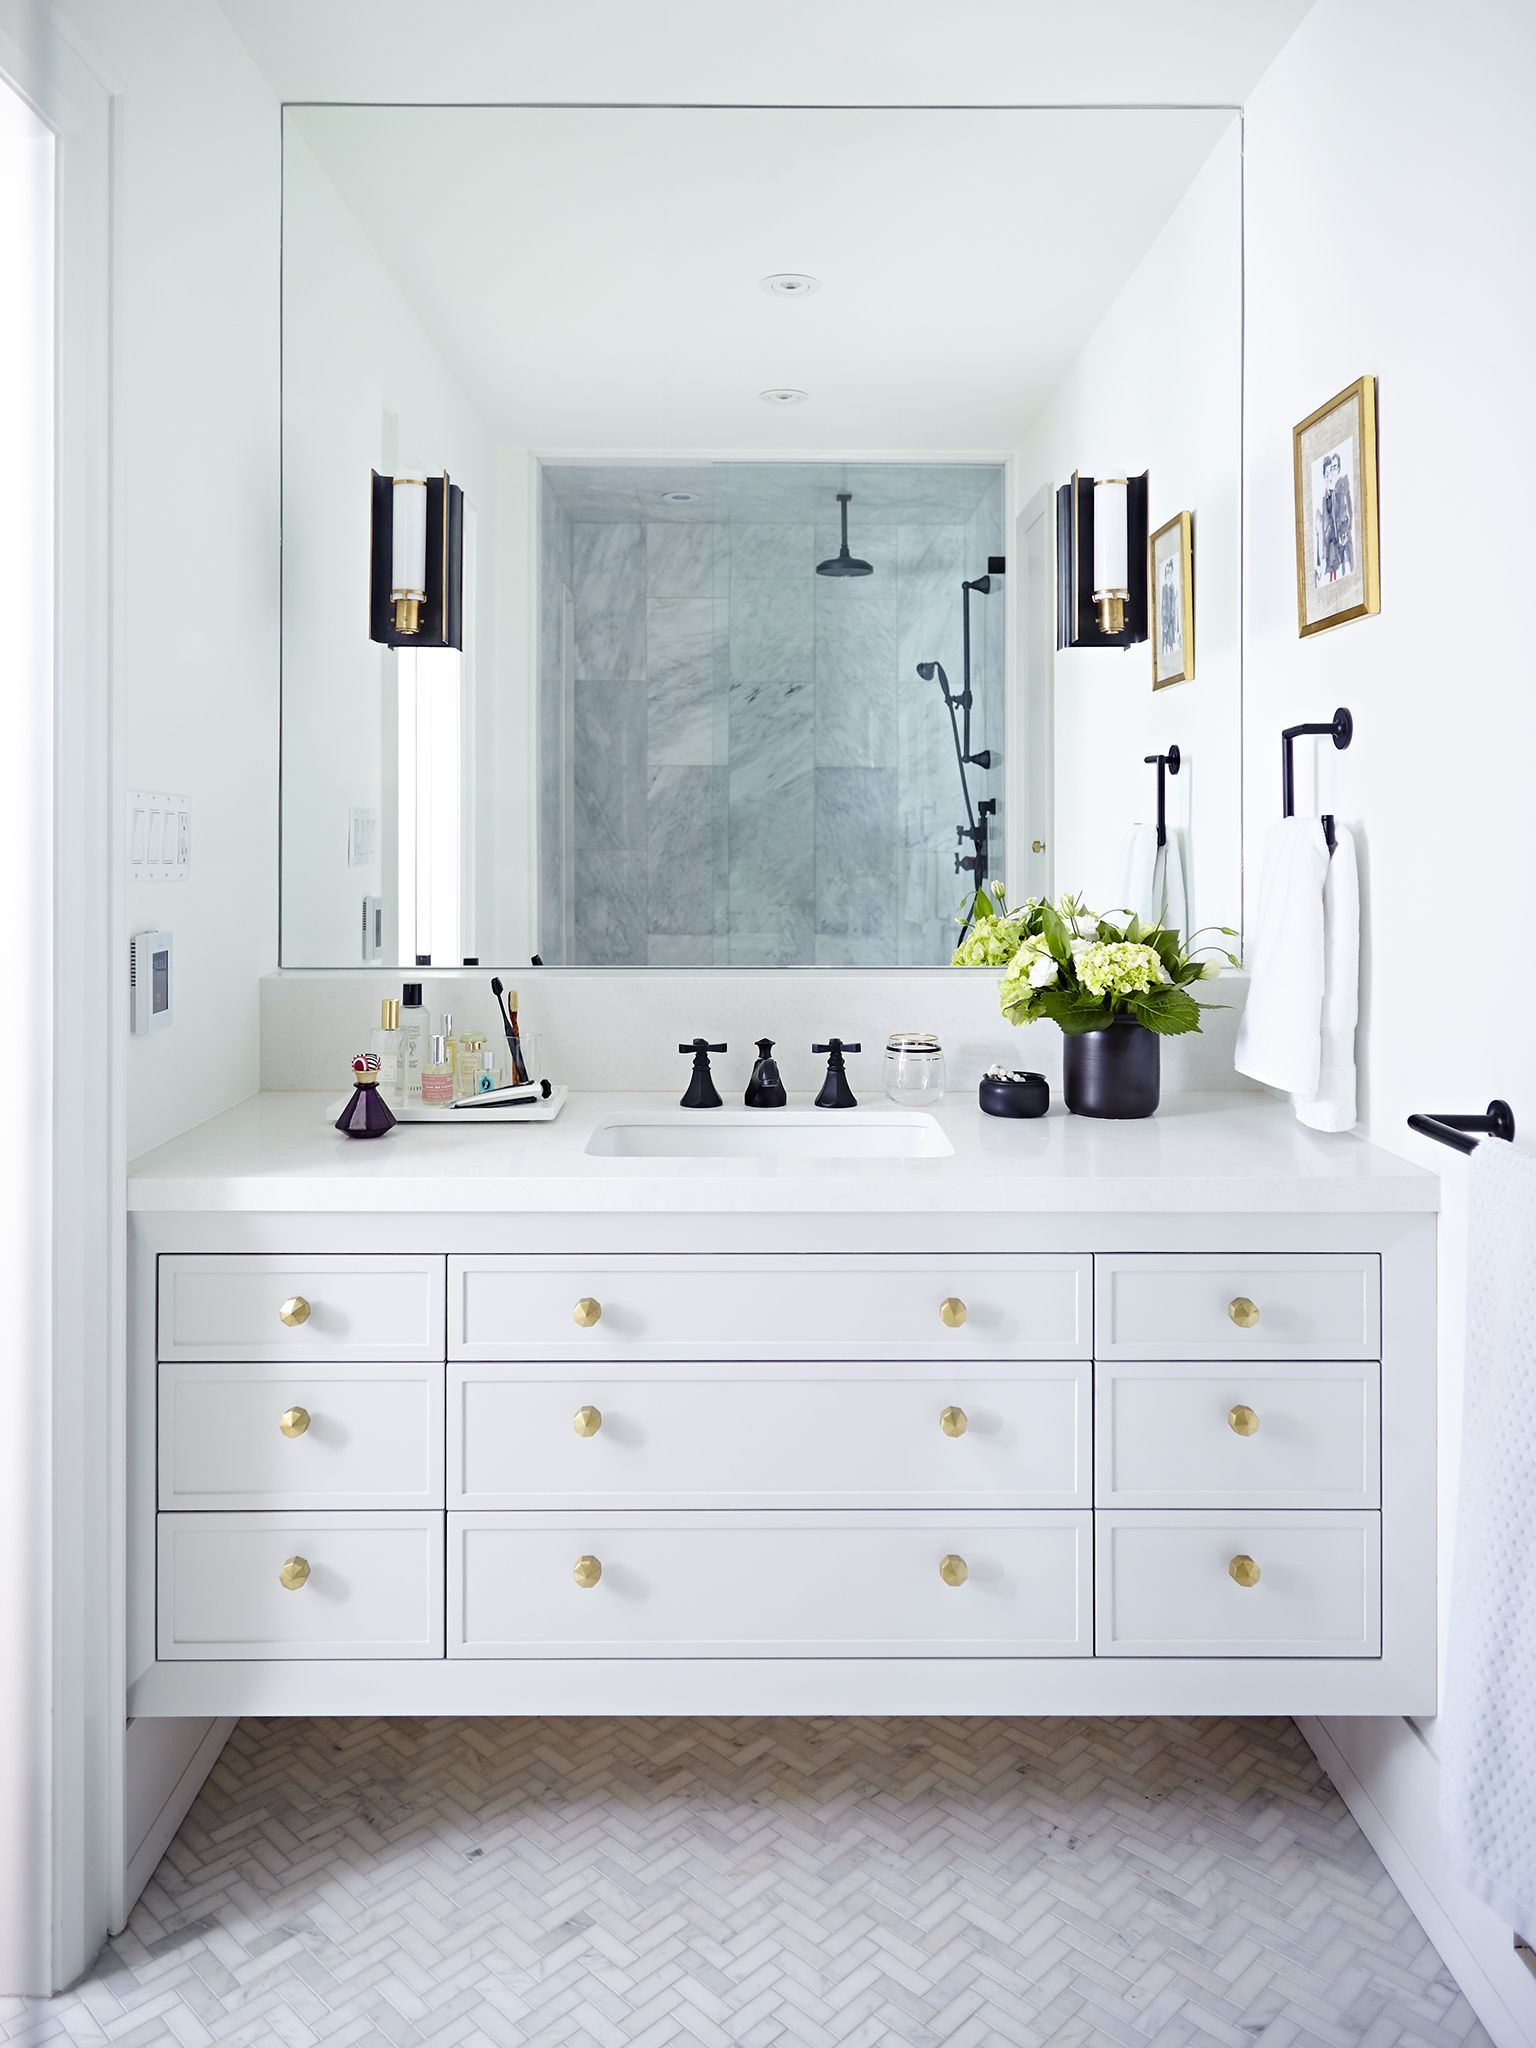 Beautiful all white bathroom design with chevron floor detailing